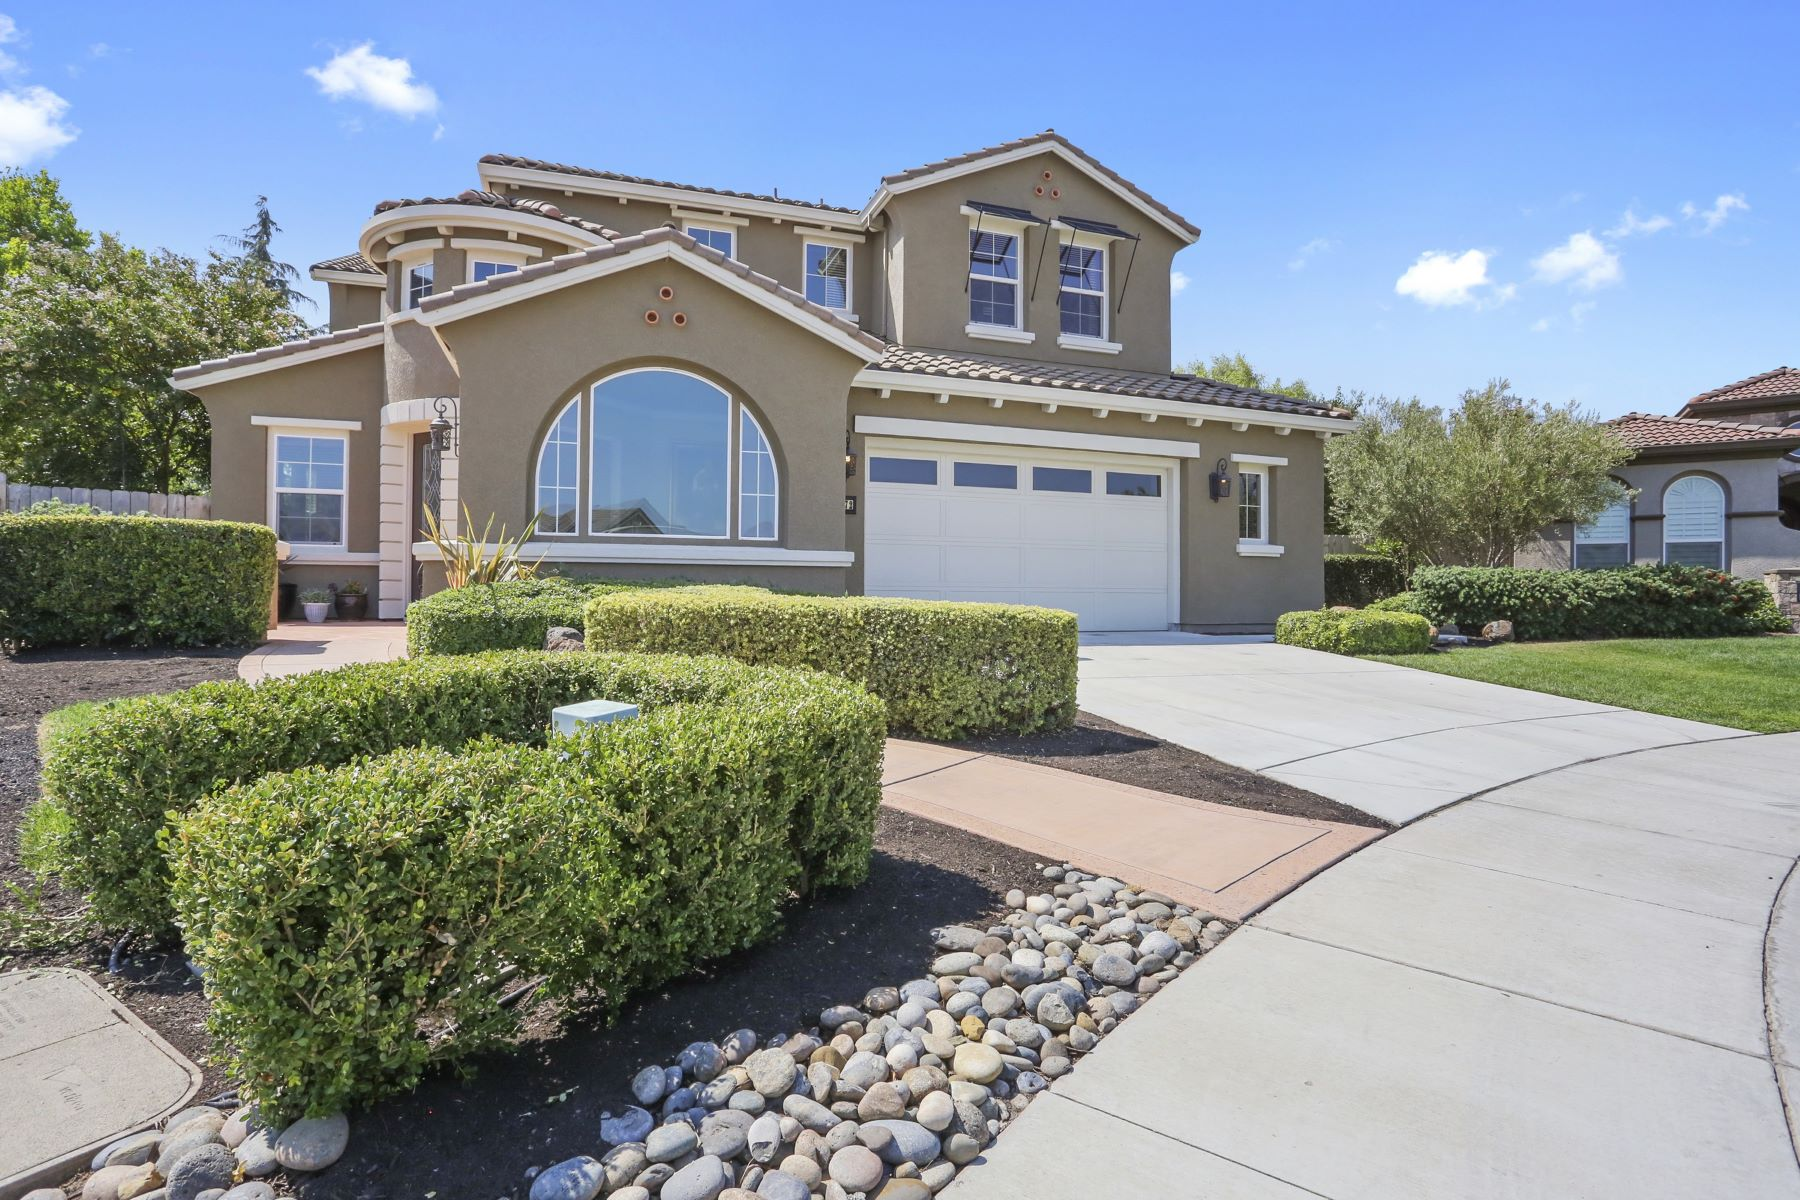 Single Family Home for Sale at Gorgeous Former Model Home 1172 Glen Abbey Court Manteca, California 95336 United States